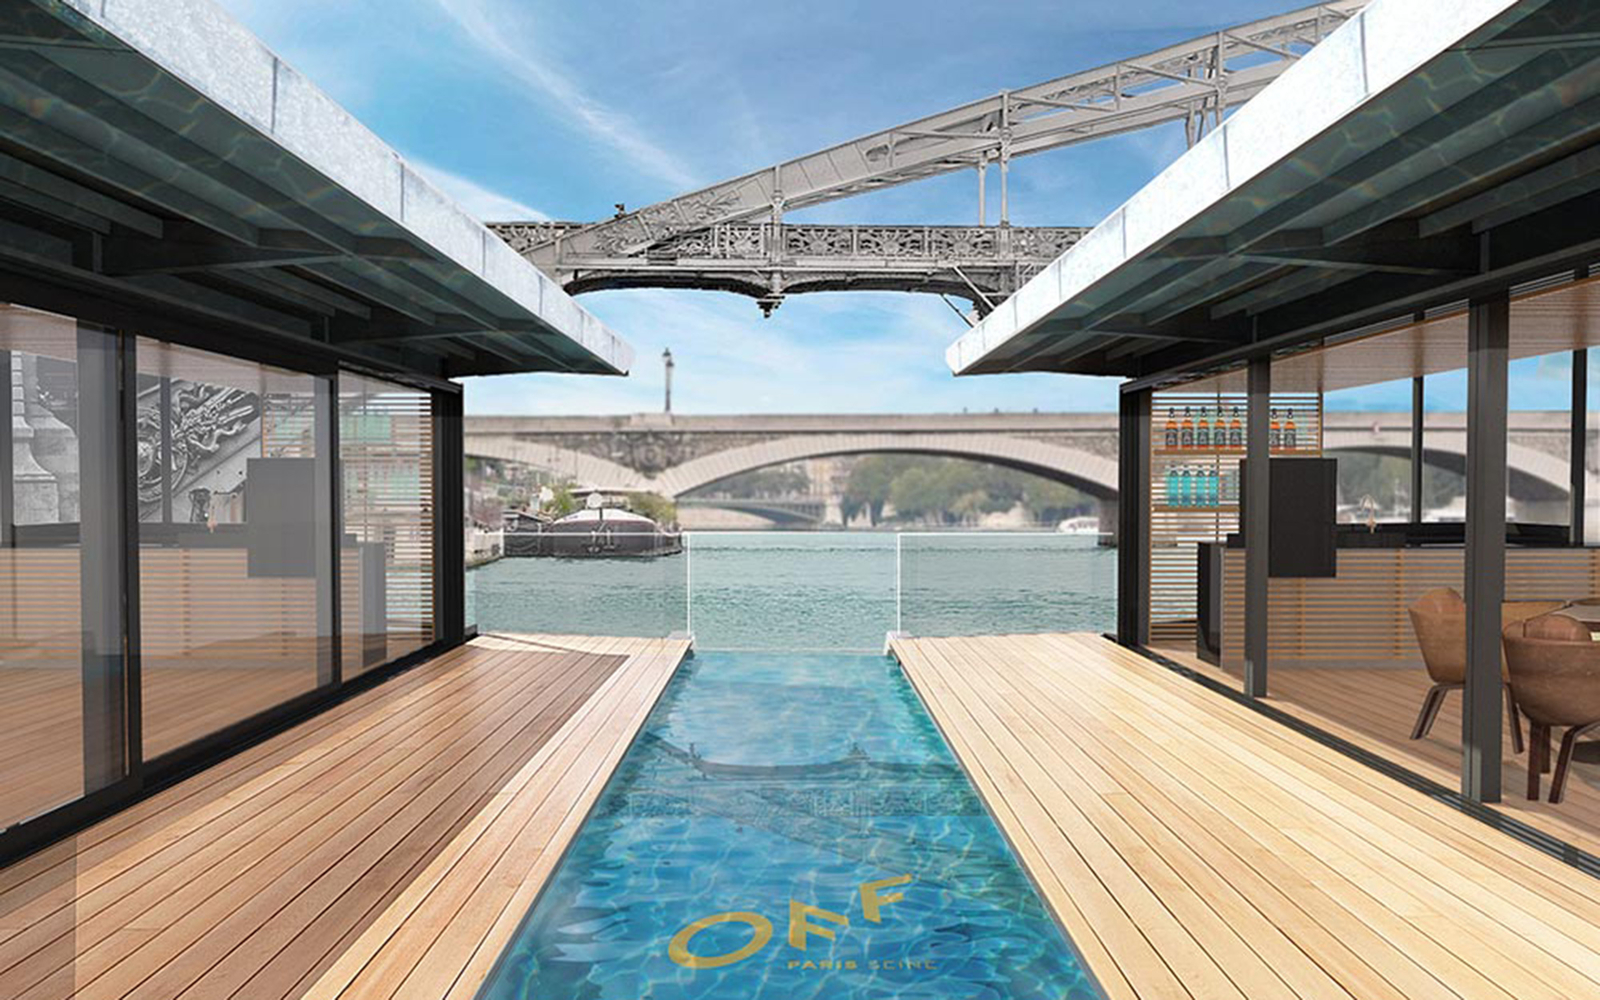 floating hotel in Paris